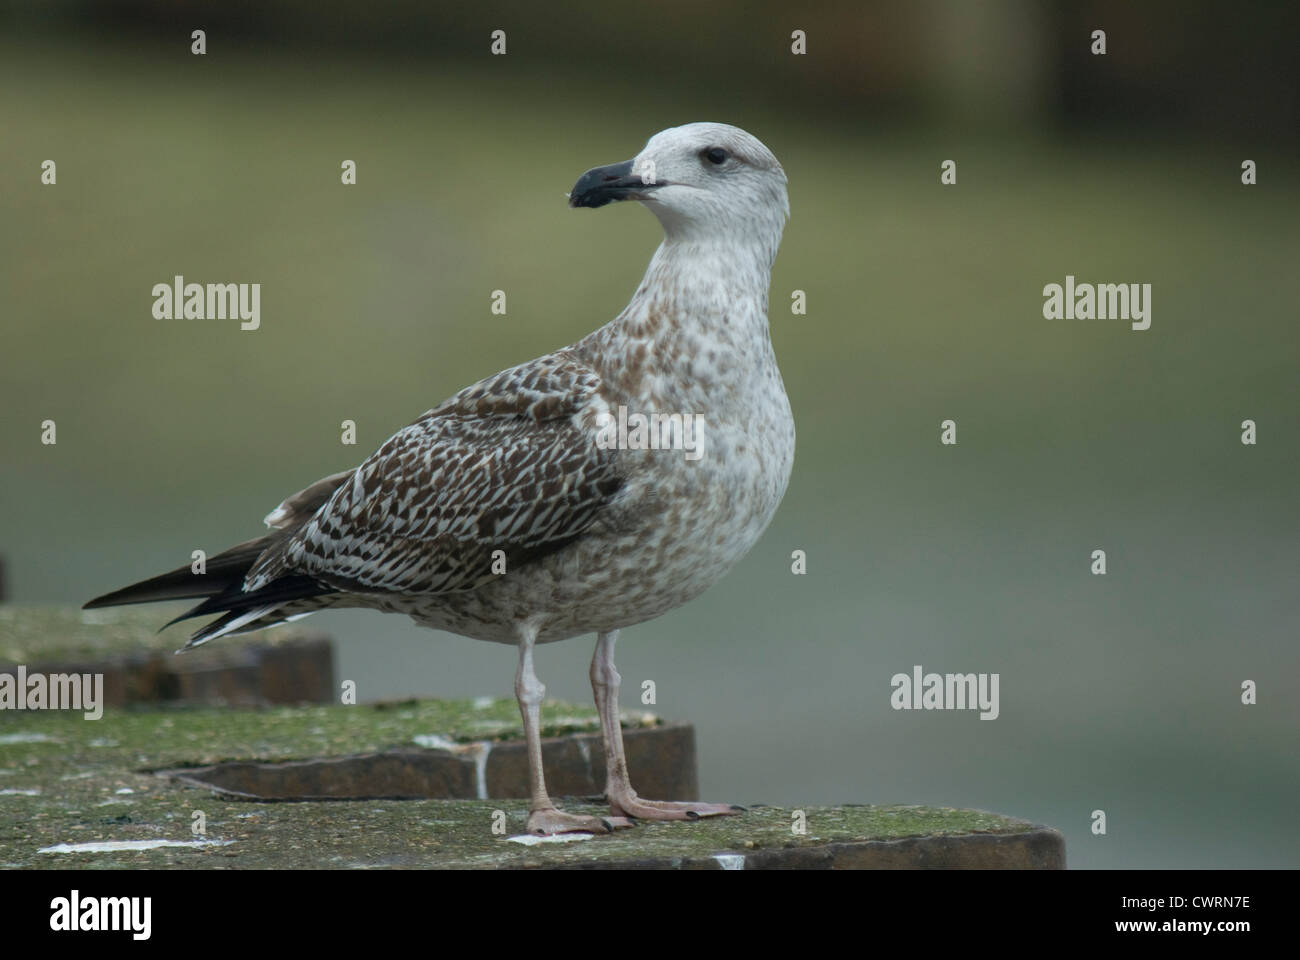 1st winter Great Black-backed Gull (Larus marinus) in Scarborough Harbour - Stock Image